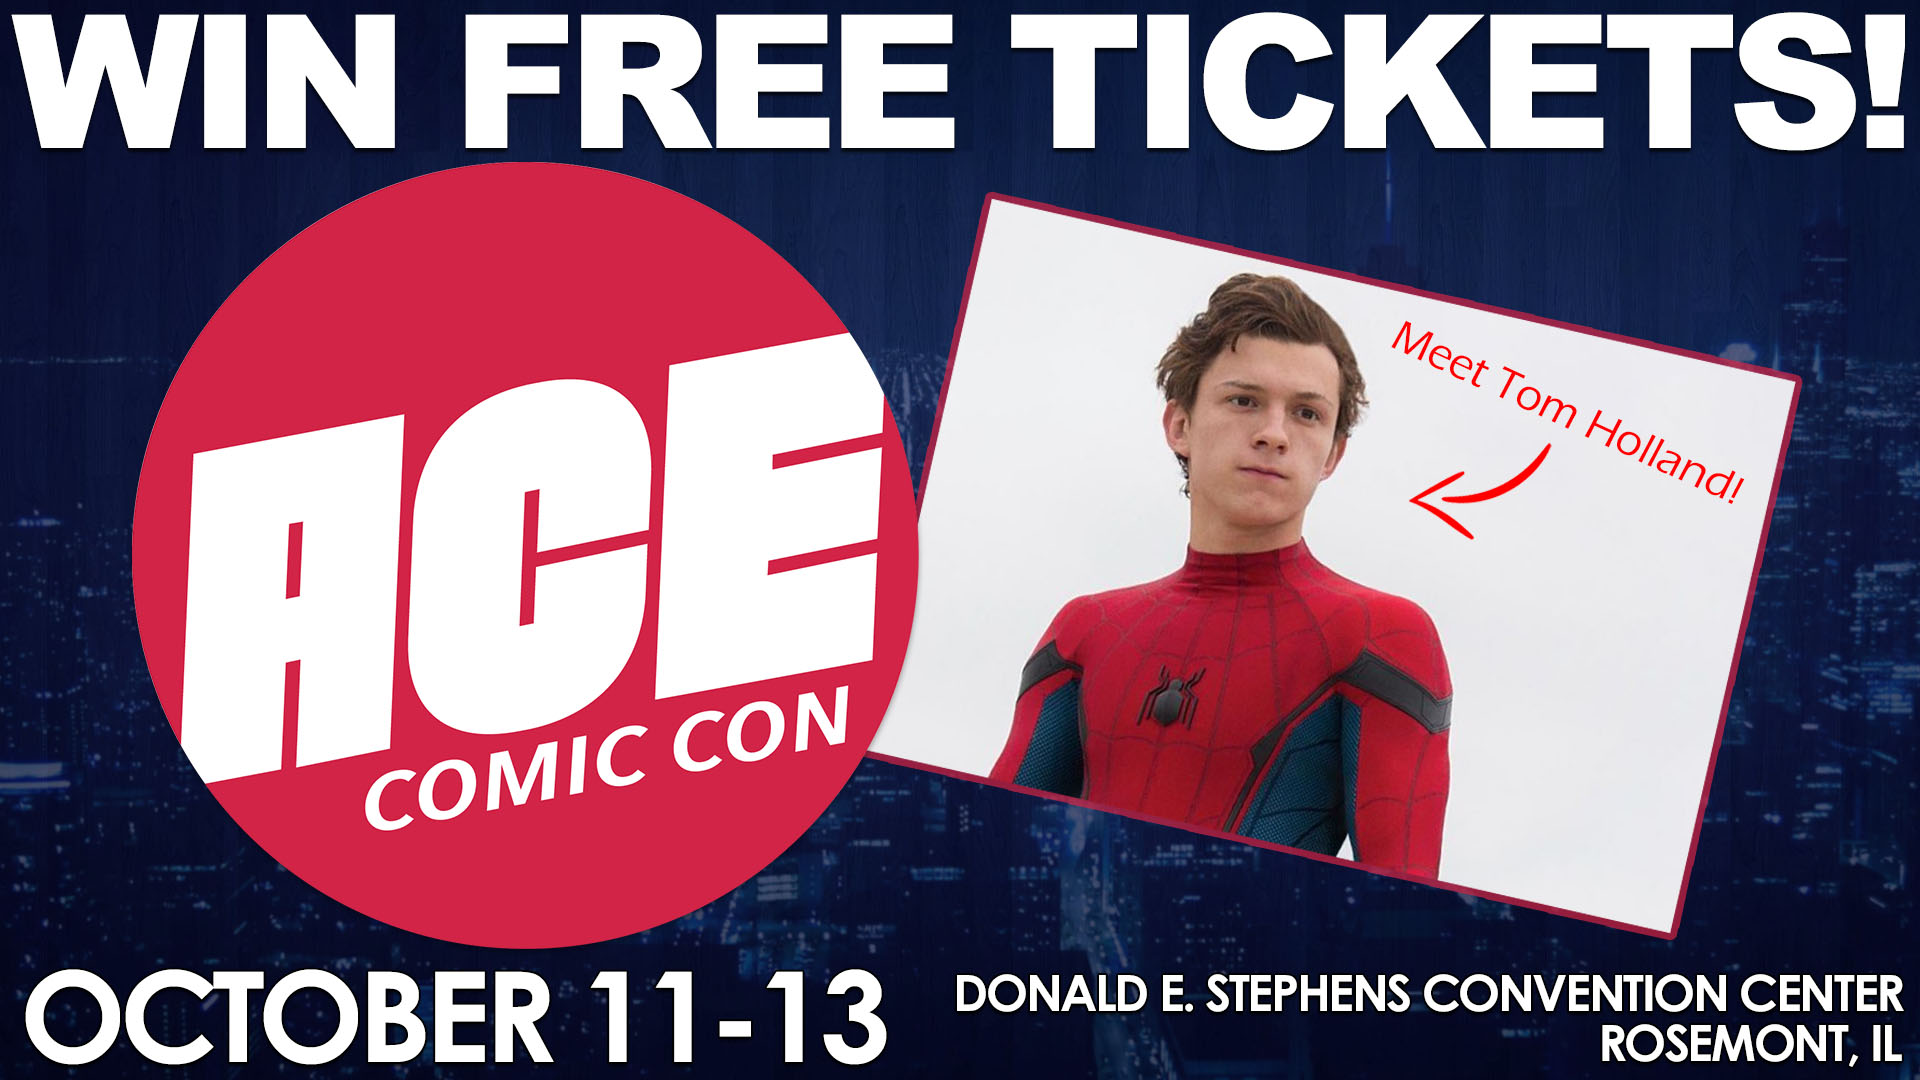 Enter to win tickets to ace comic con